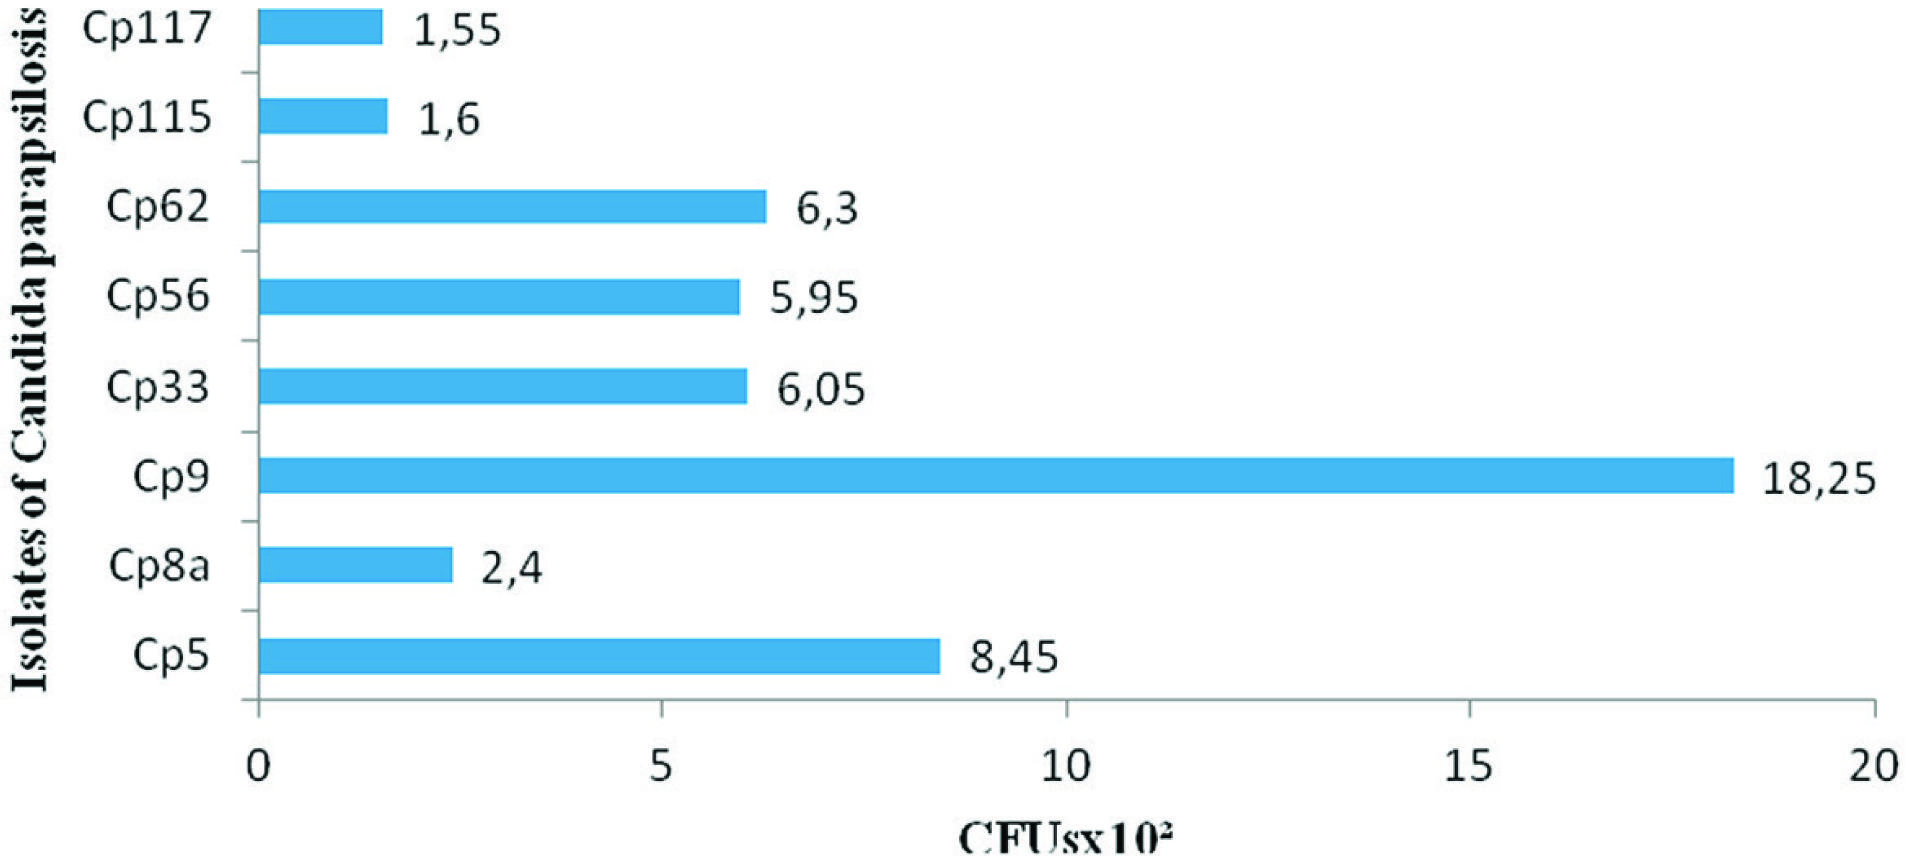 Distribution of the number of CFUs isolates adhered to copper